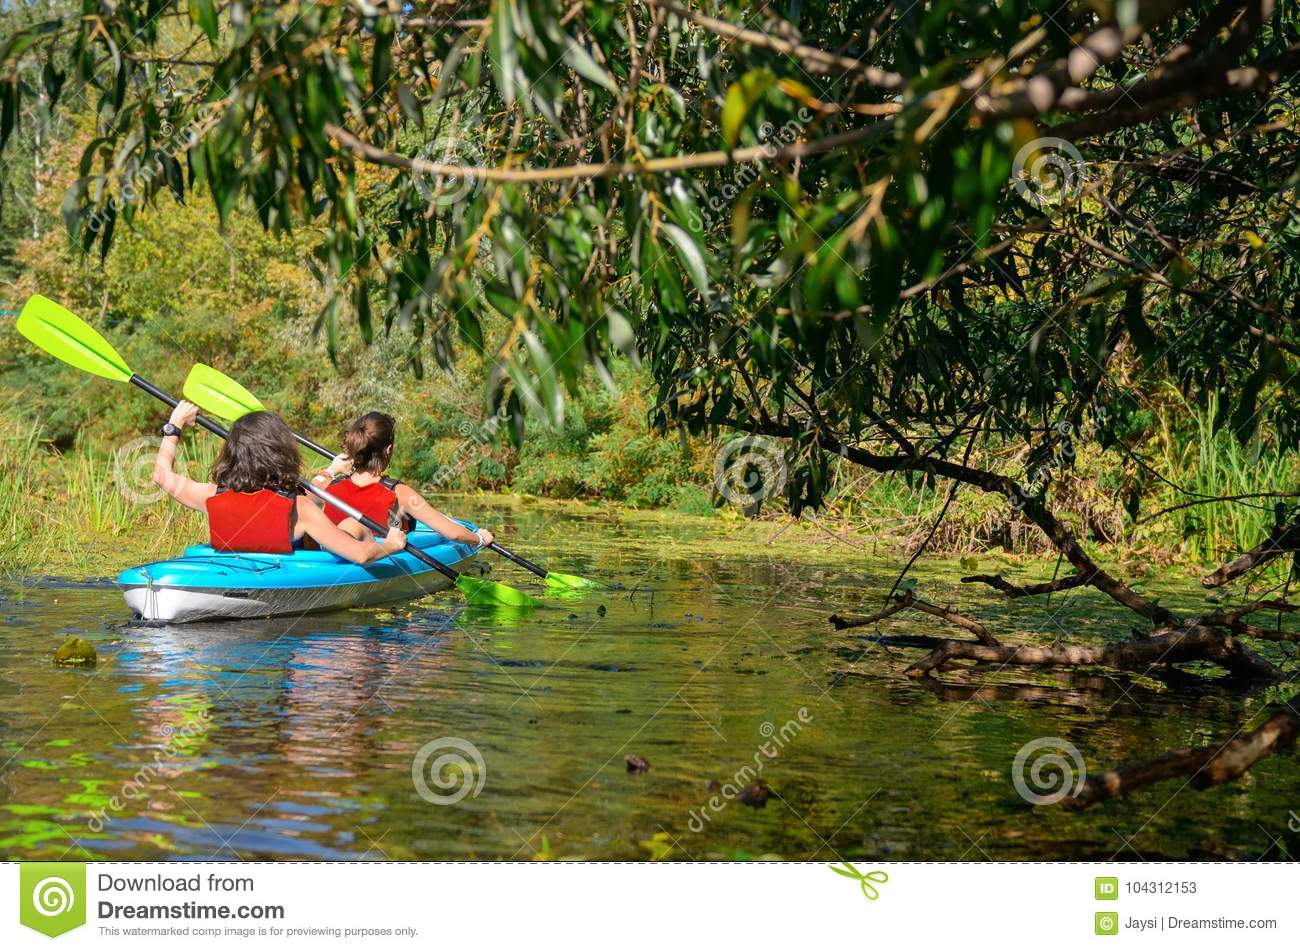 Family kayaking, mother and child paddling in kayak on river canoe tour, active summer weekend and vacation, sport and fitness